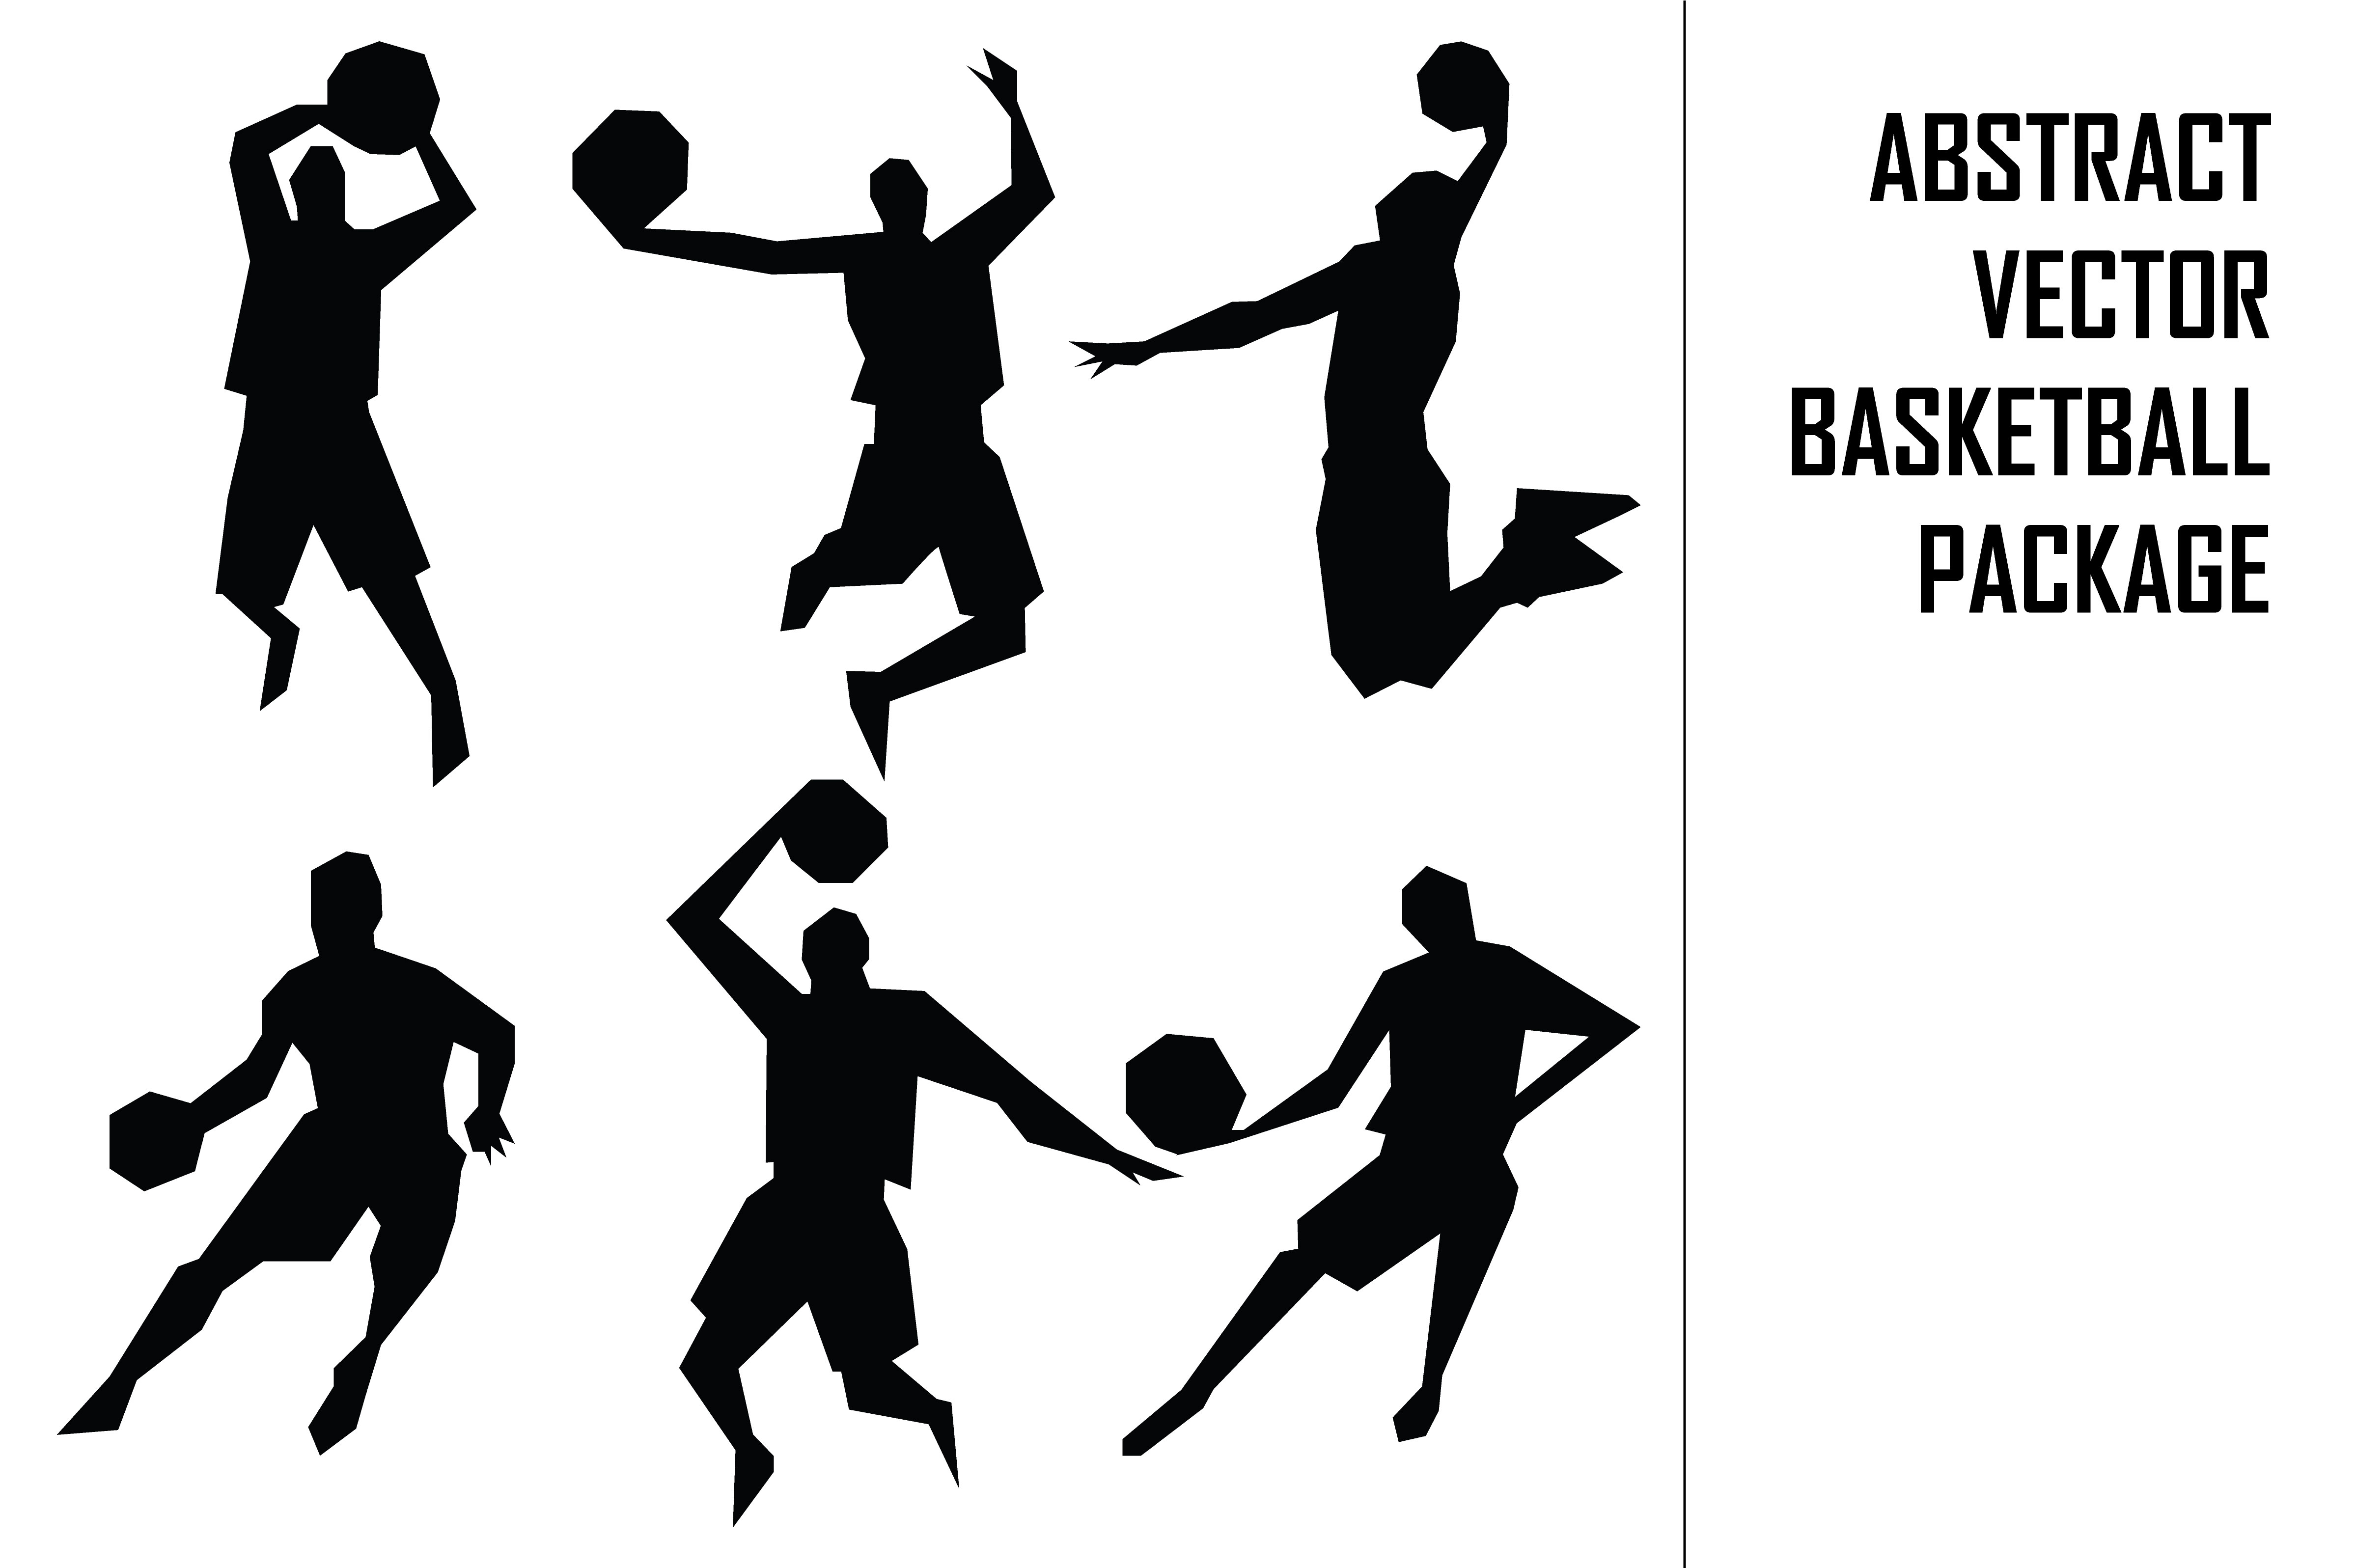 Download Free Abstract Vector Basketball Package Graphic By Qasas77 Creative for Cricut Explore, Silhouette and other cutting machines.